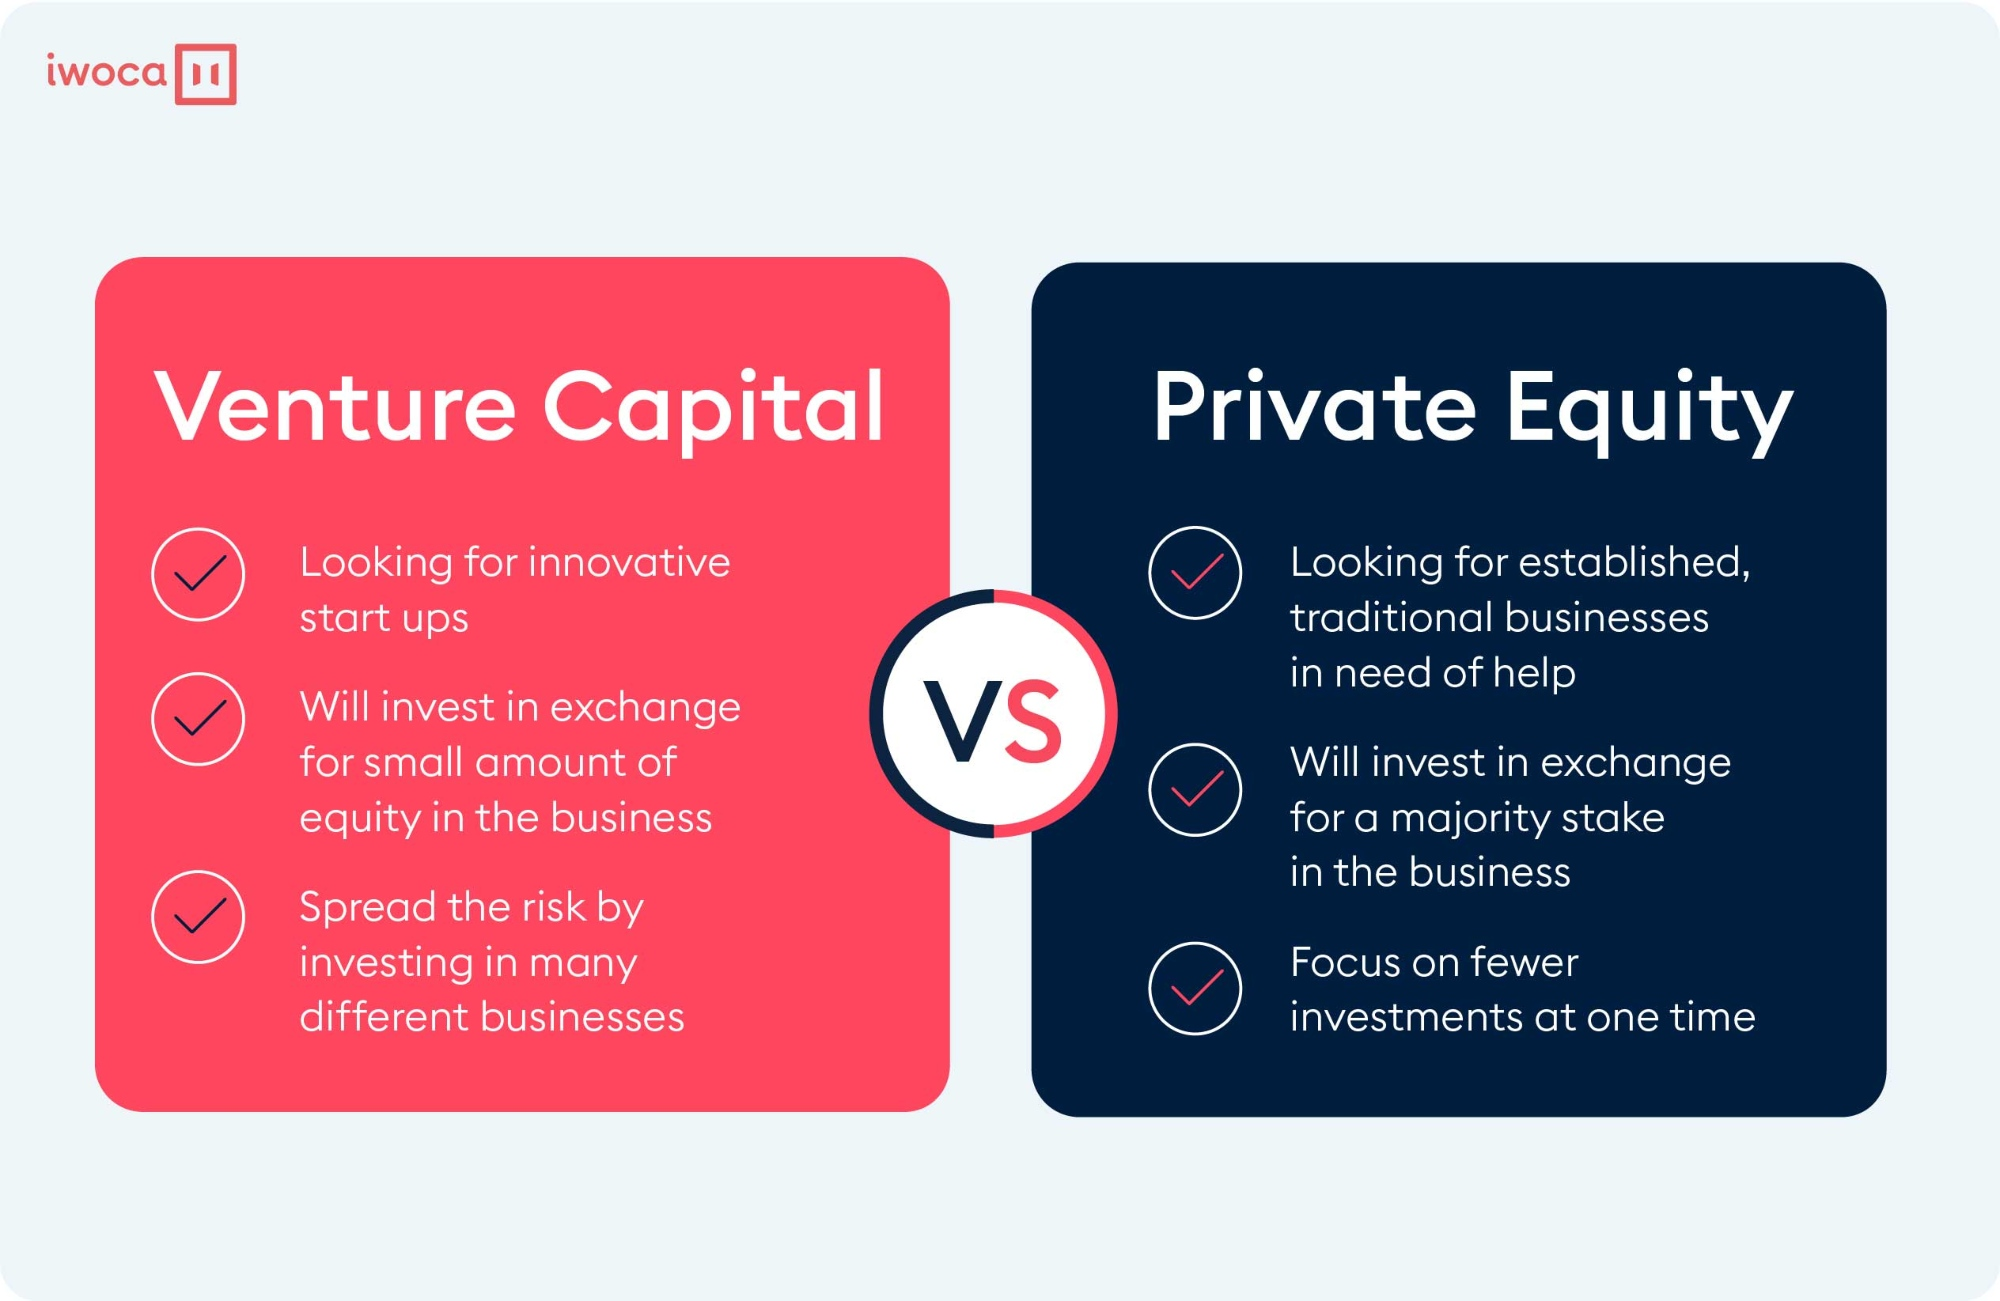 venture-capital-vs-private-equity